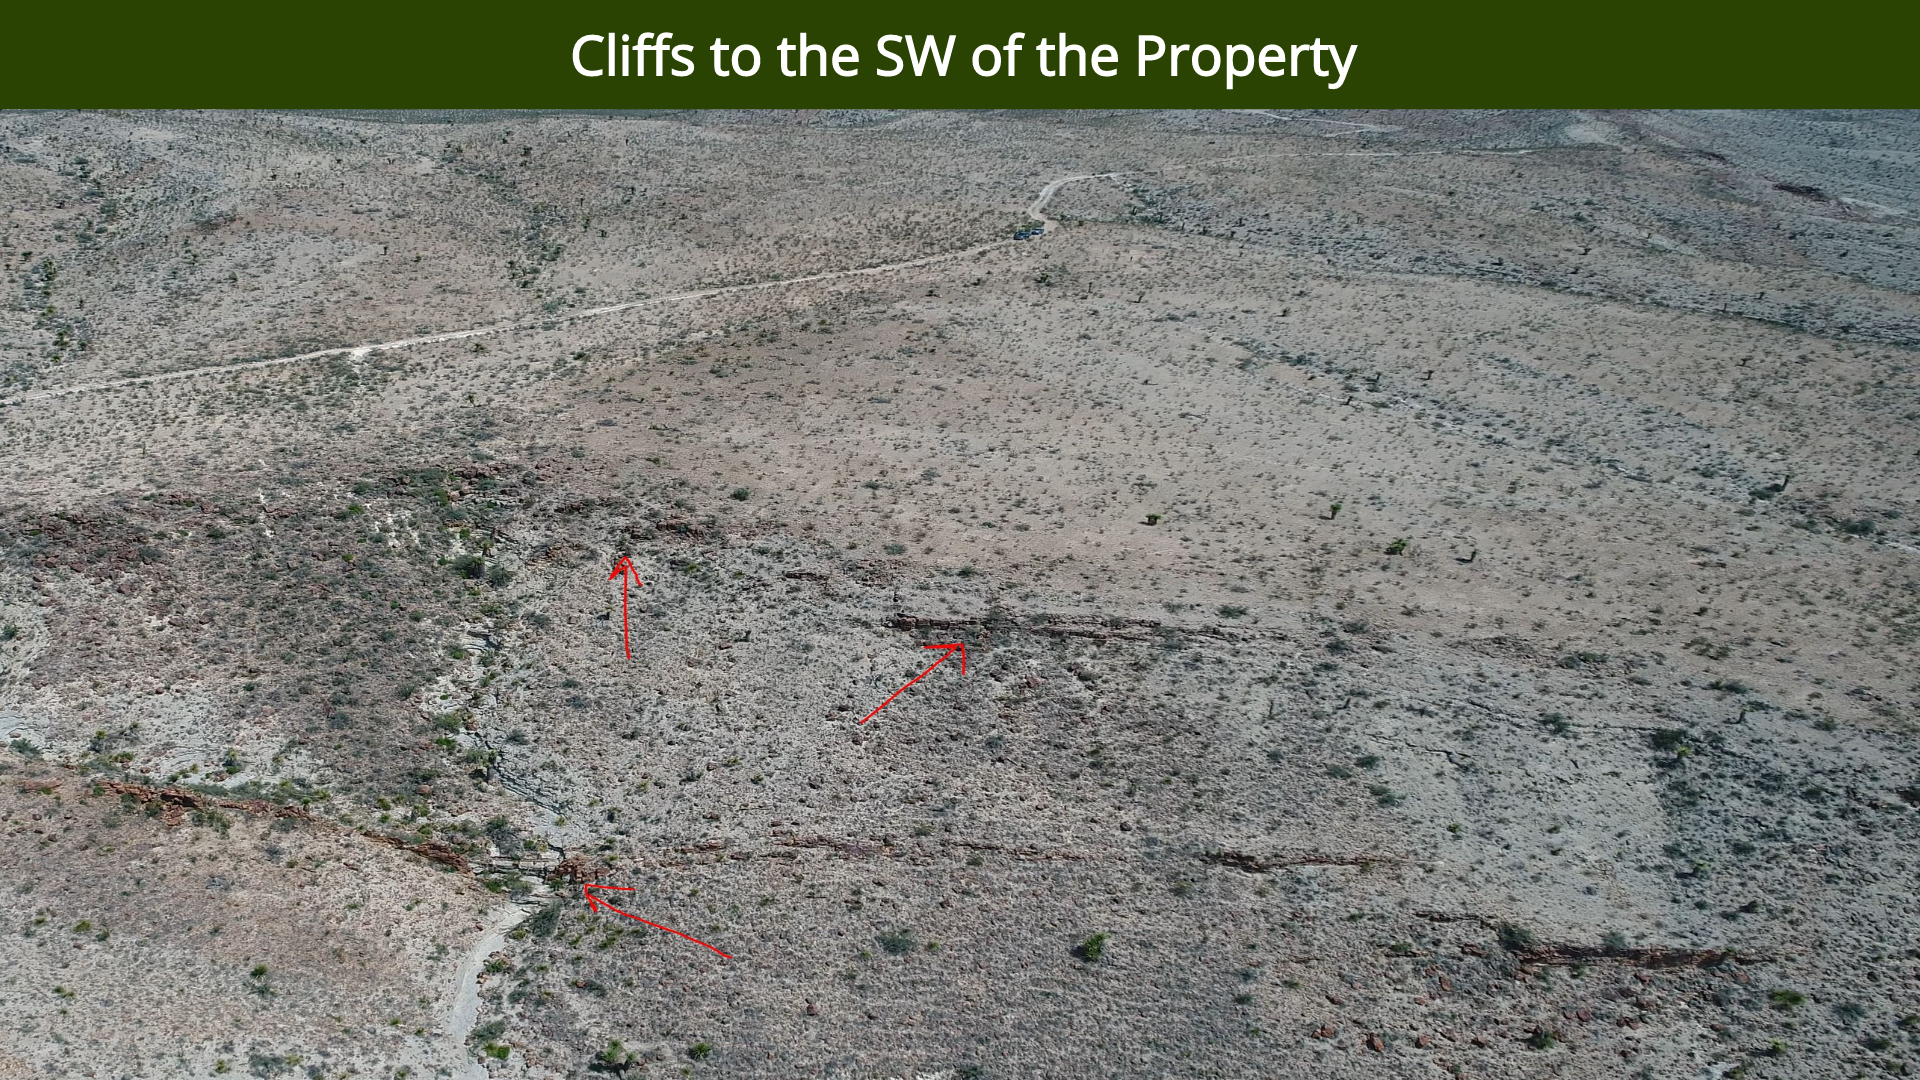 Cliffs to the SW of the Property